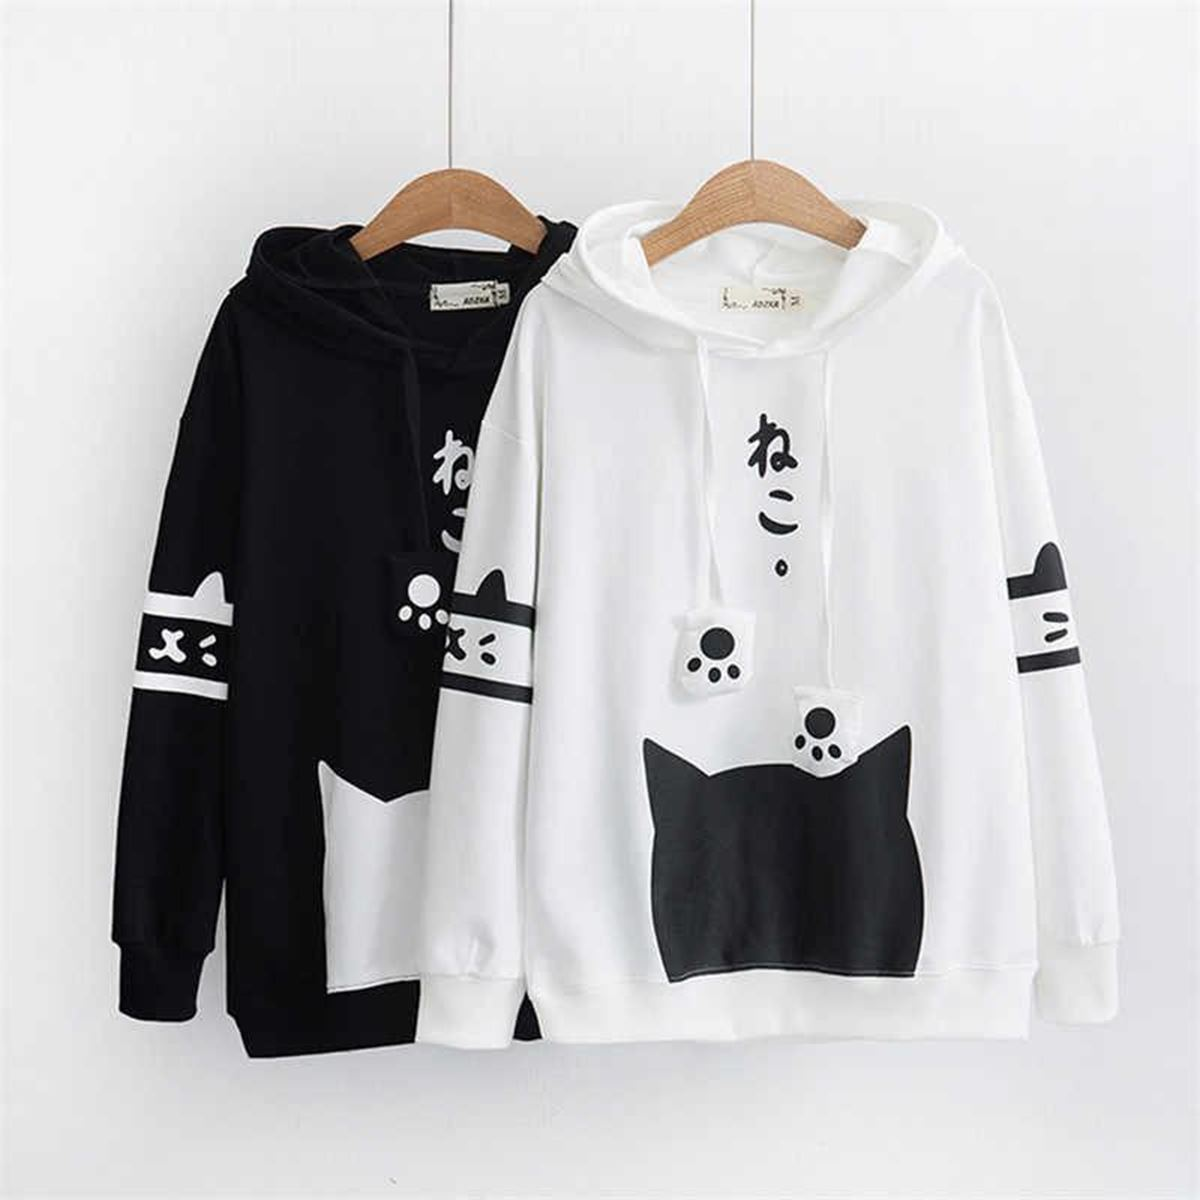 Patili Bayan Sweatshirt BS-002